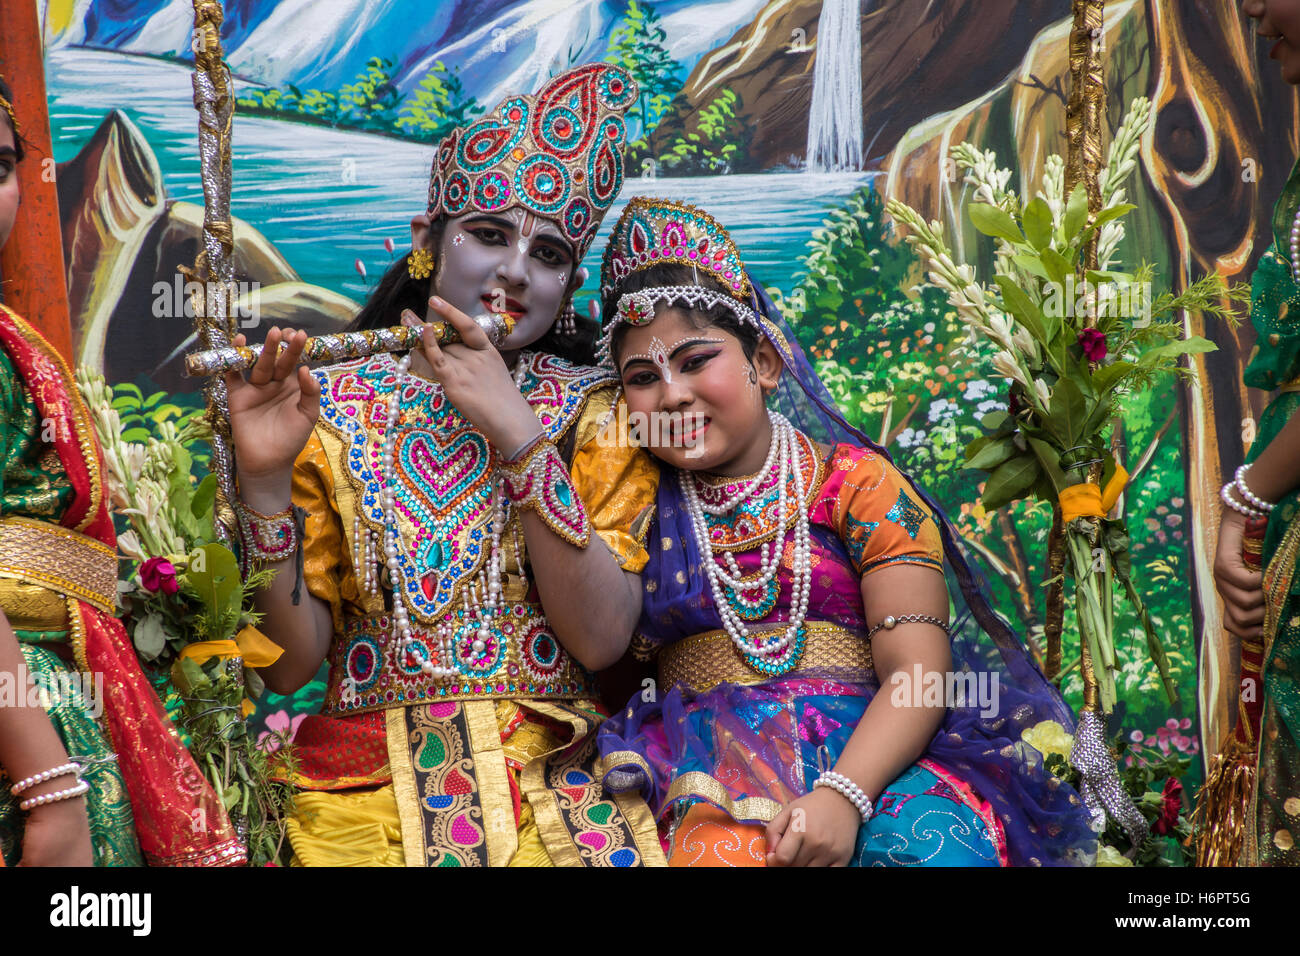 Radha Krishna Stock Photos & Radha Krishna Stock Images